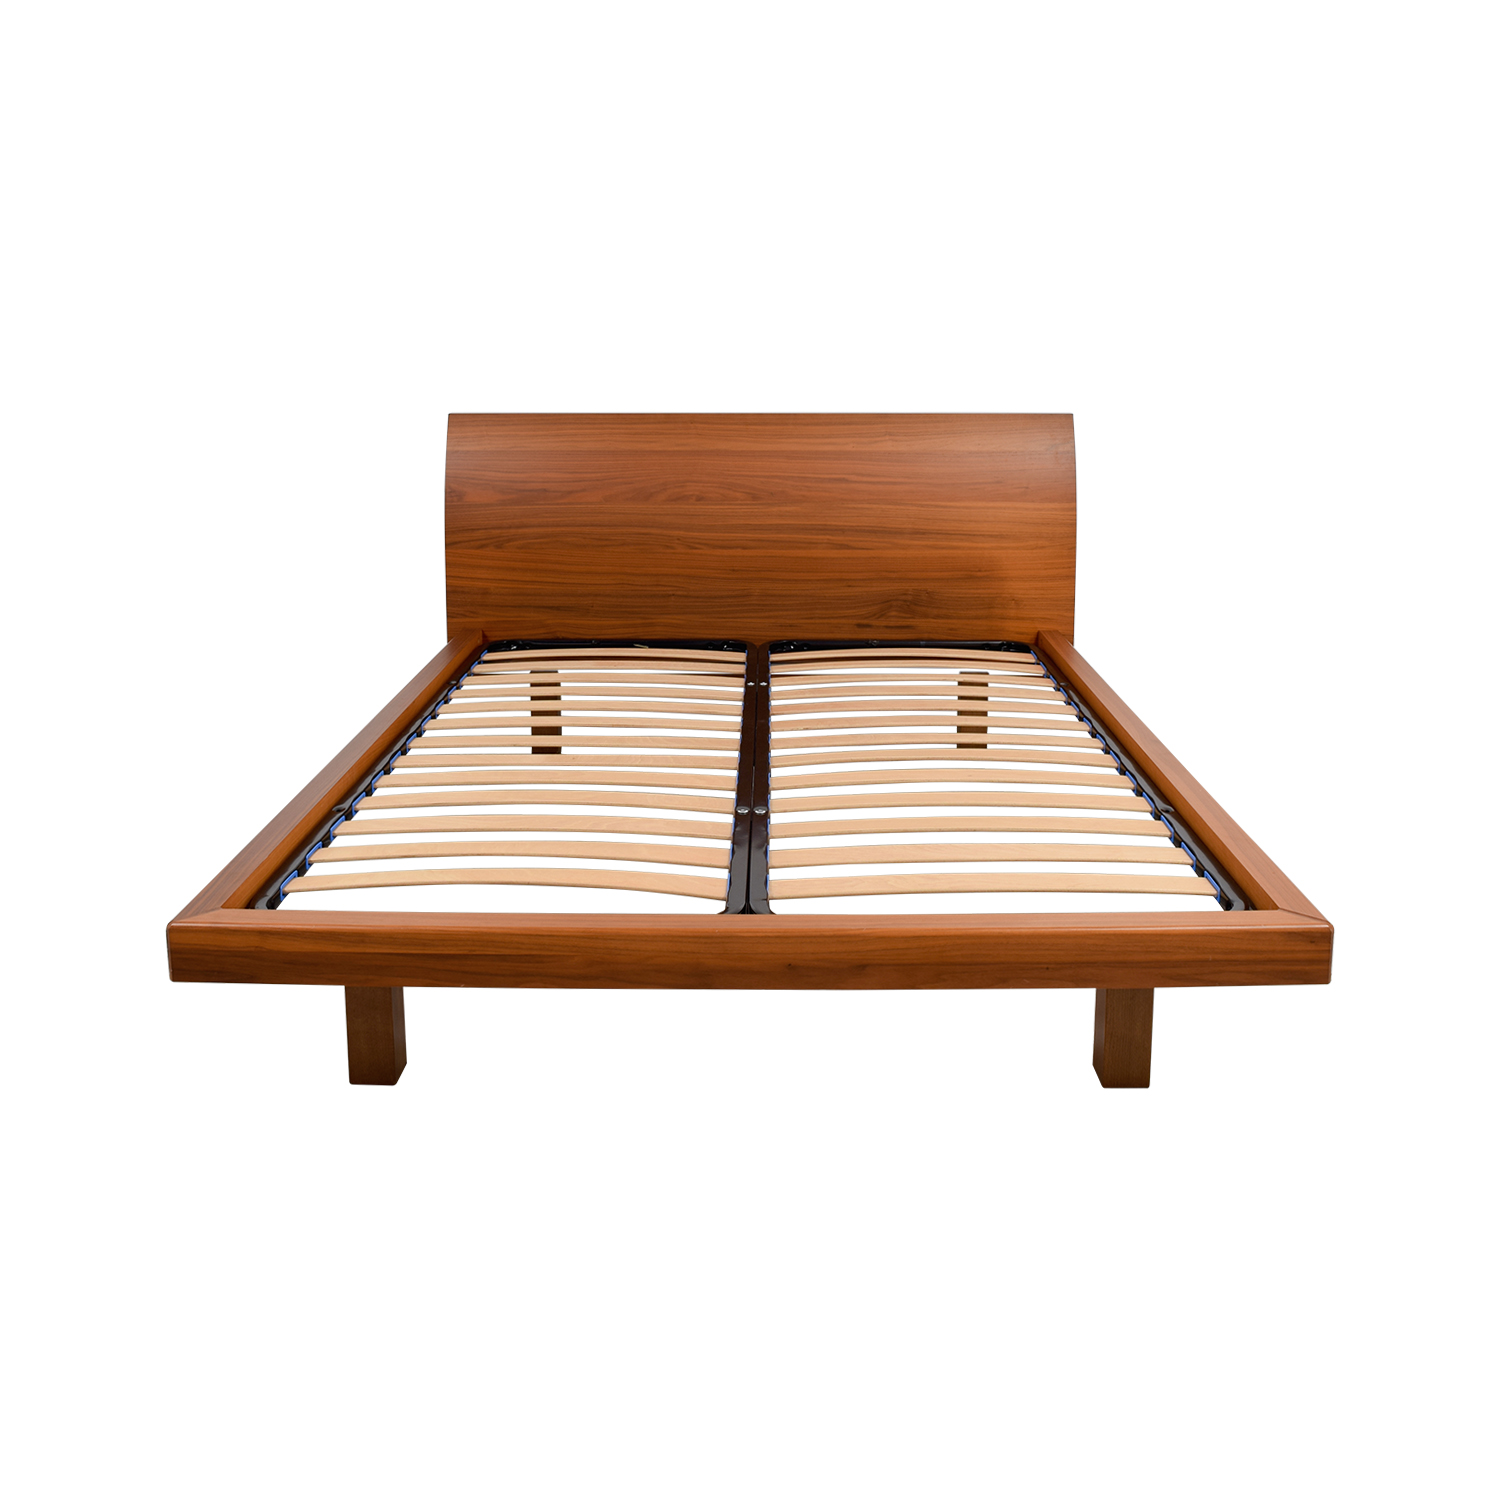 55% OFF - Jensen Lewis Jensen Lewis Queen Platform Bed Frame / Beds